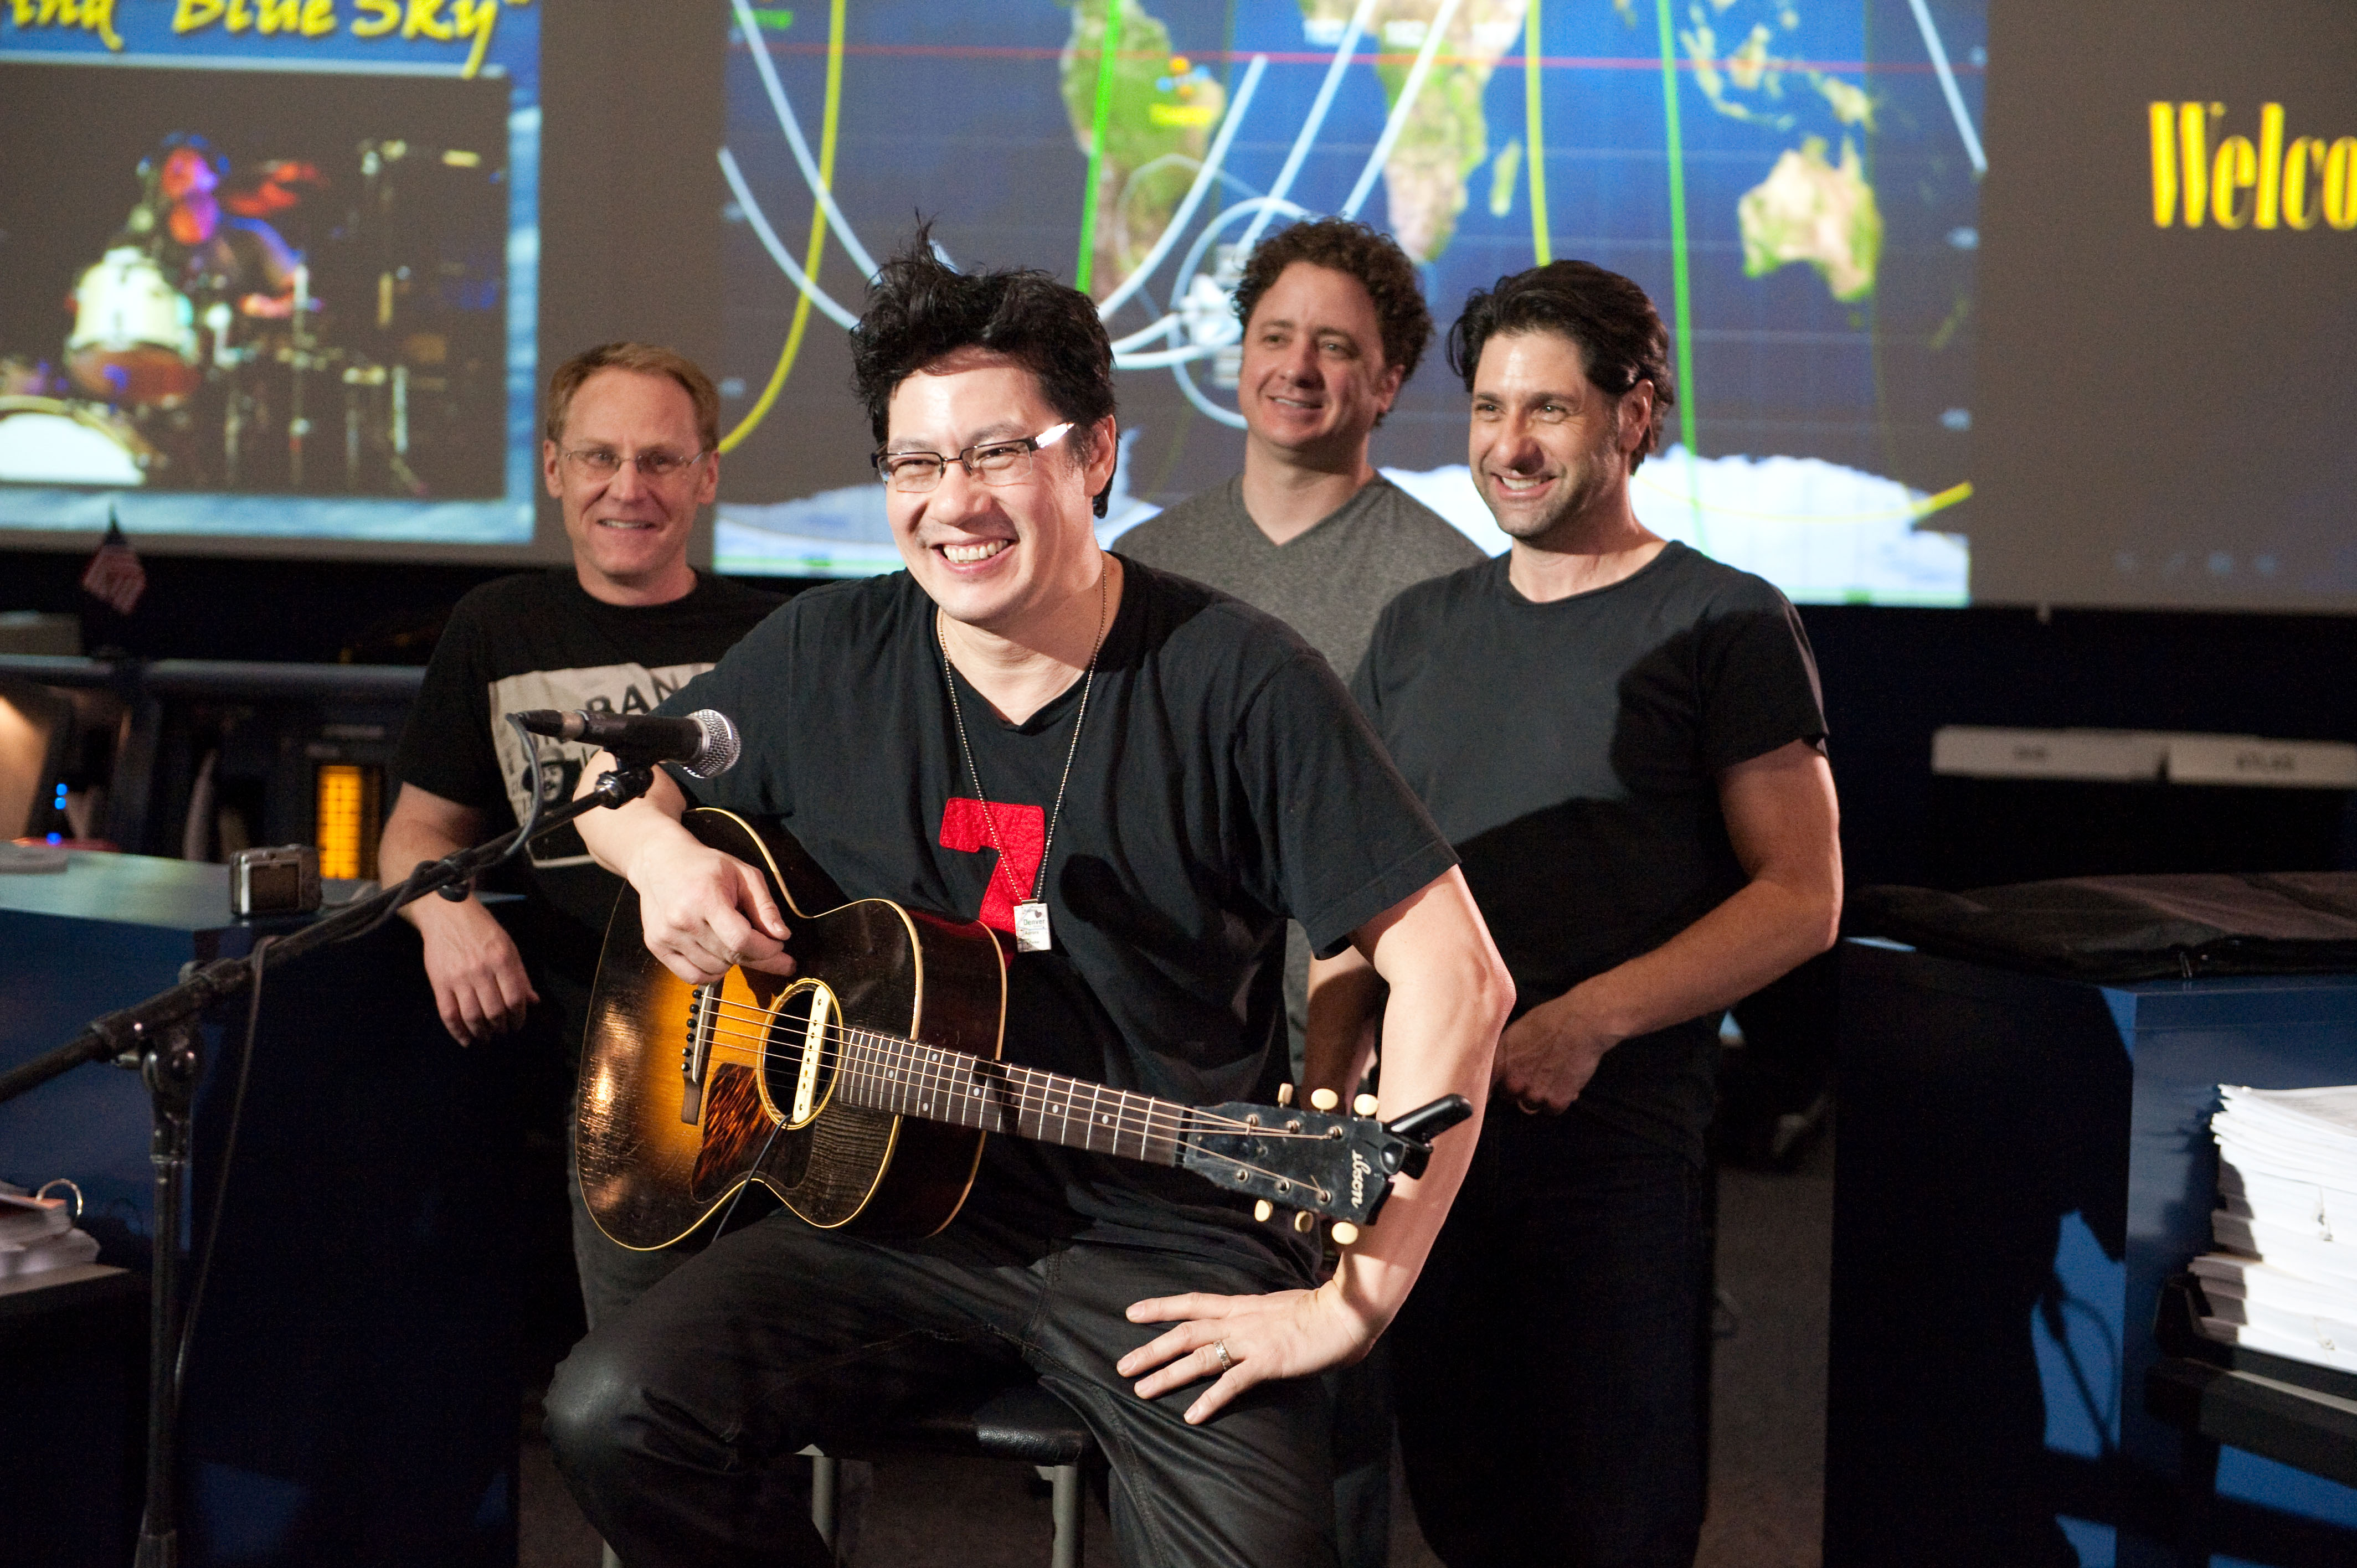 <p>Big Head Todd and the Monsters. From left to right, Rob Squires, Todd Park Mohr, Jeremy Lawton, and Brian Nevin.</p>